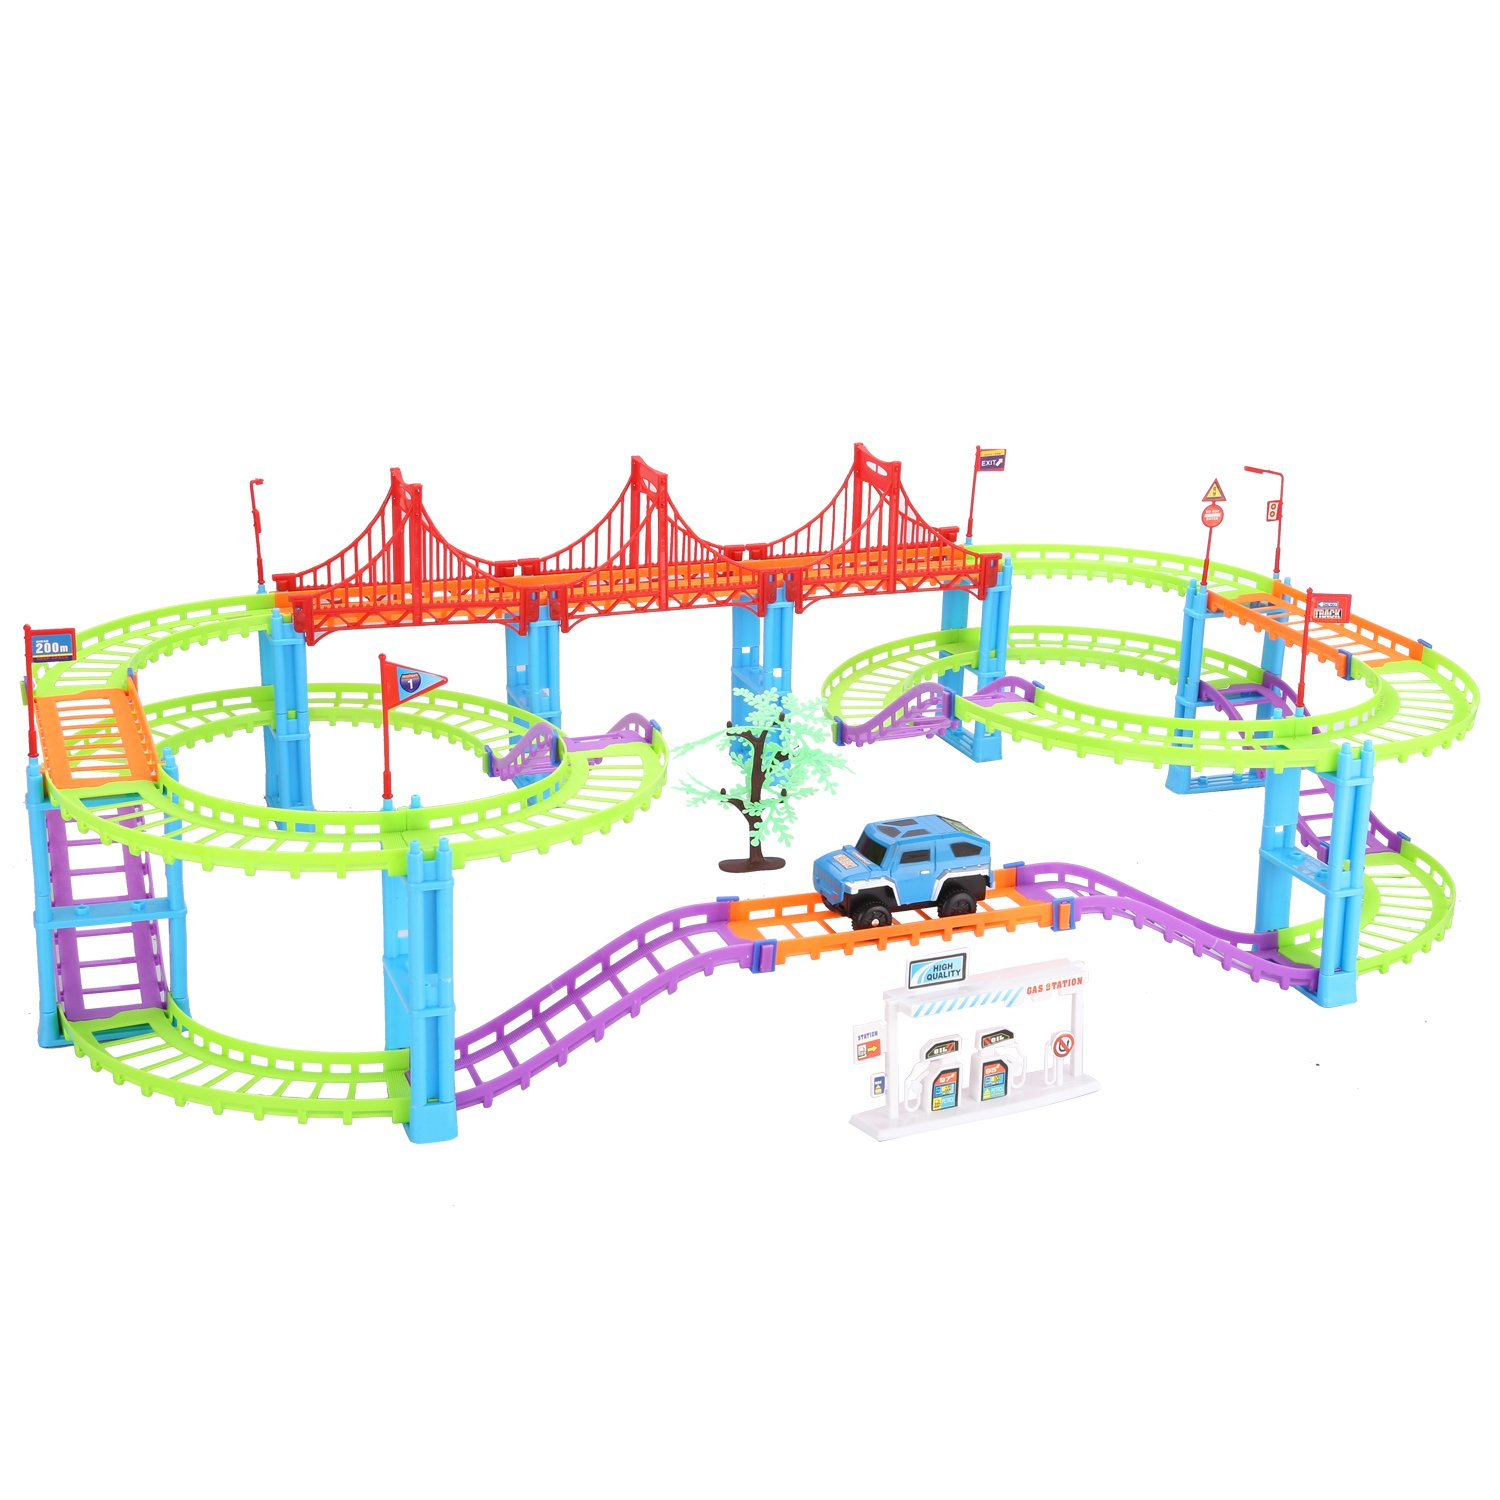 SZJJX Multi-Track Rail Car Building Block Railway Train Set Educational Kids DIY Assembly Toy with Race Track and Electric Car Double Orbits Colorful